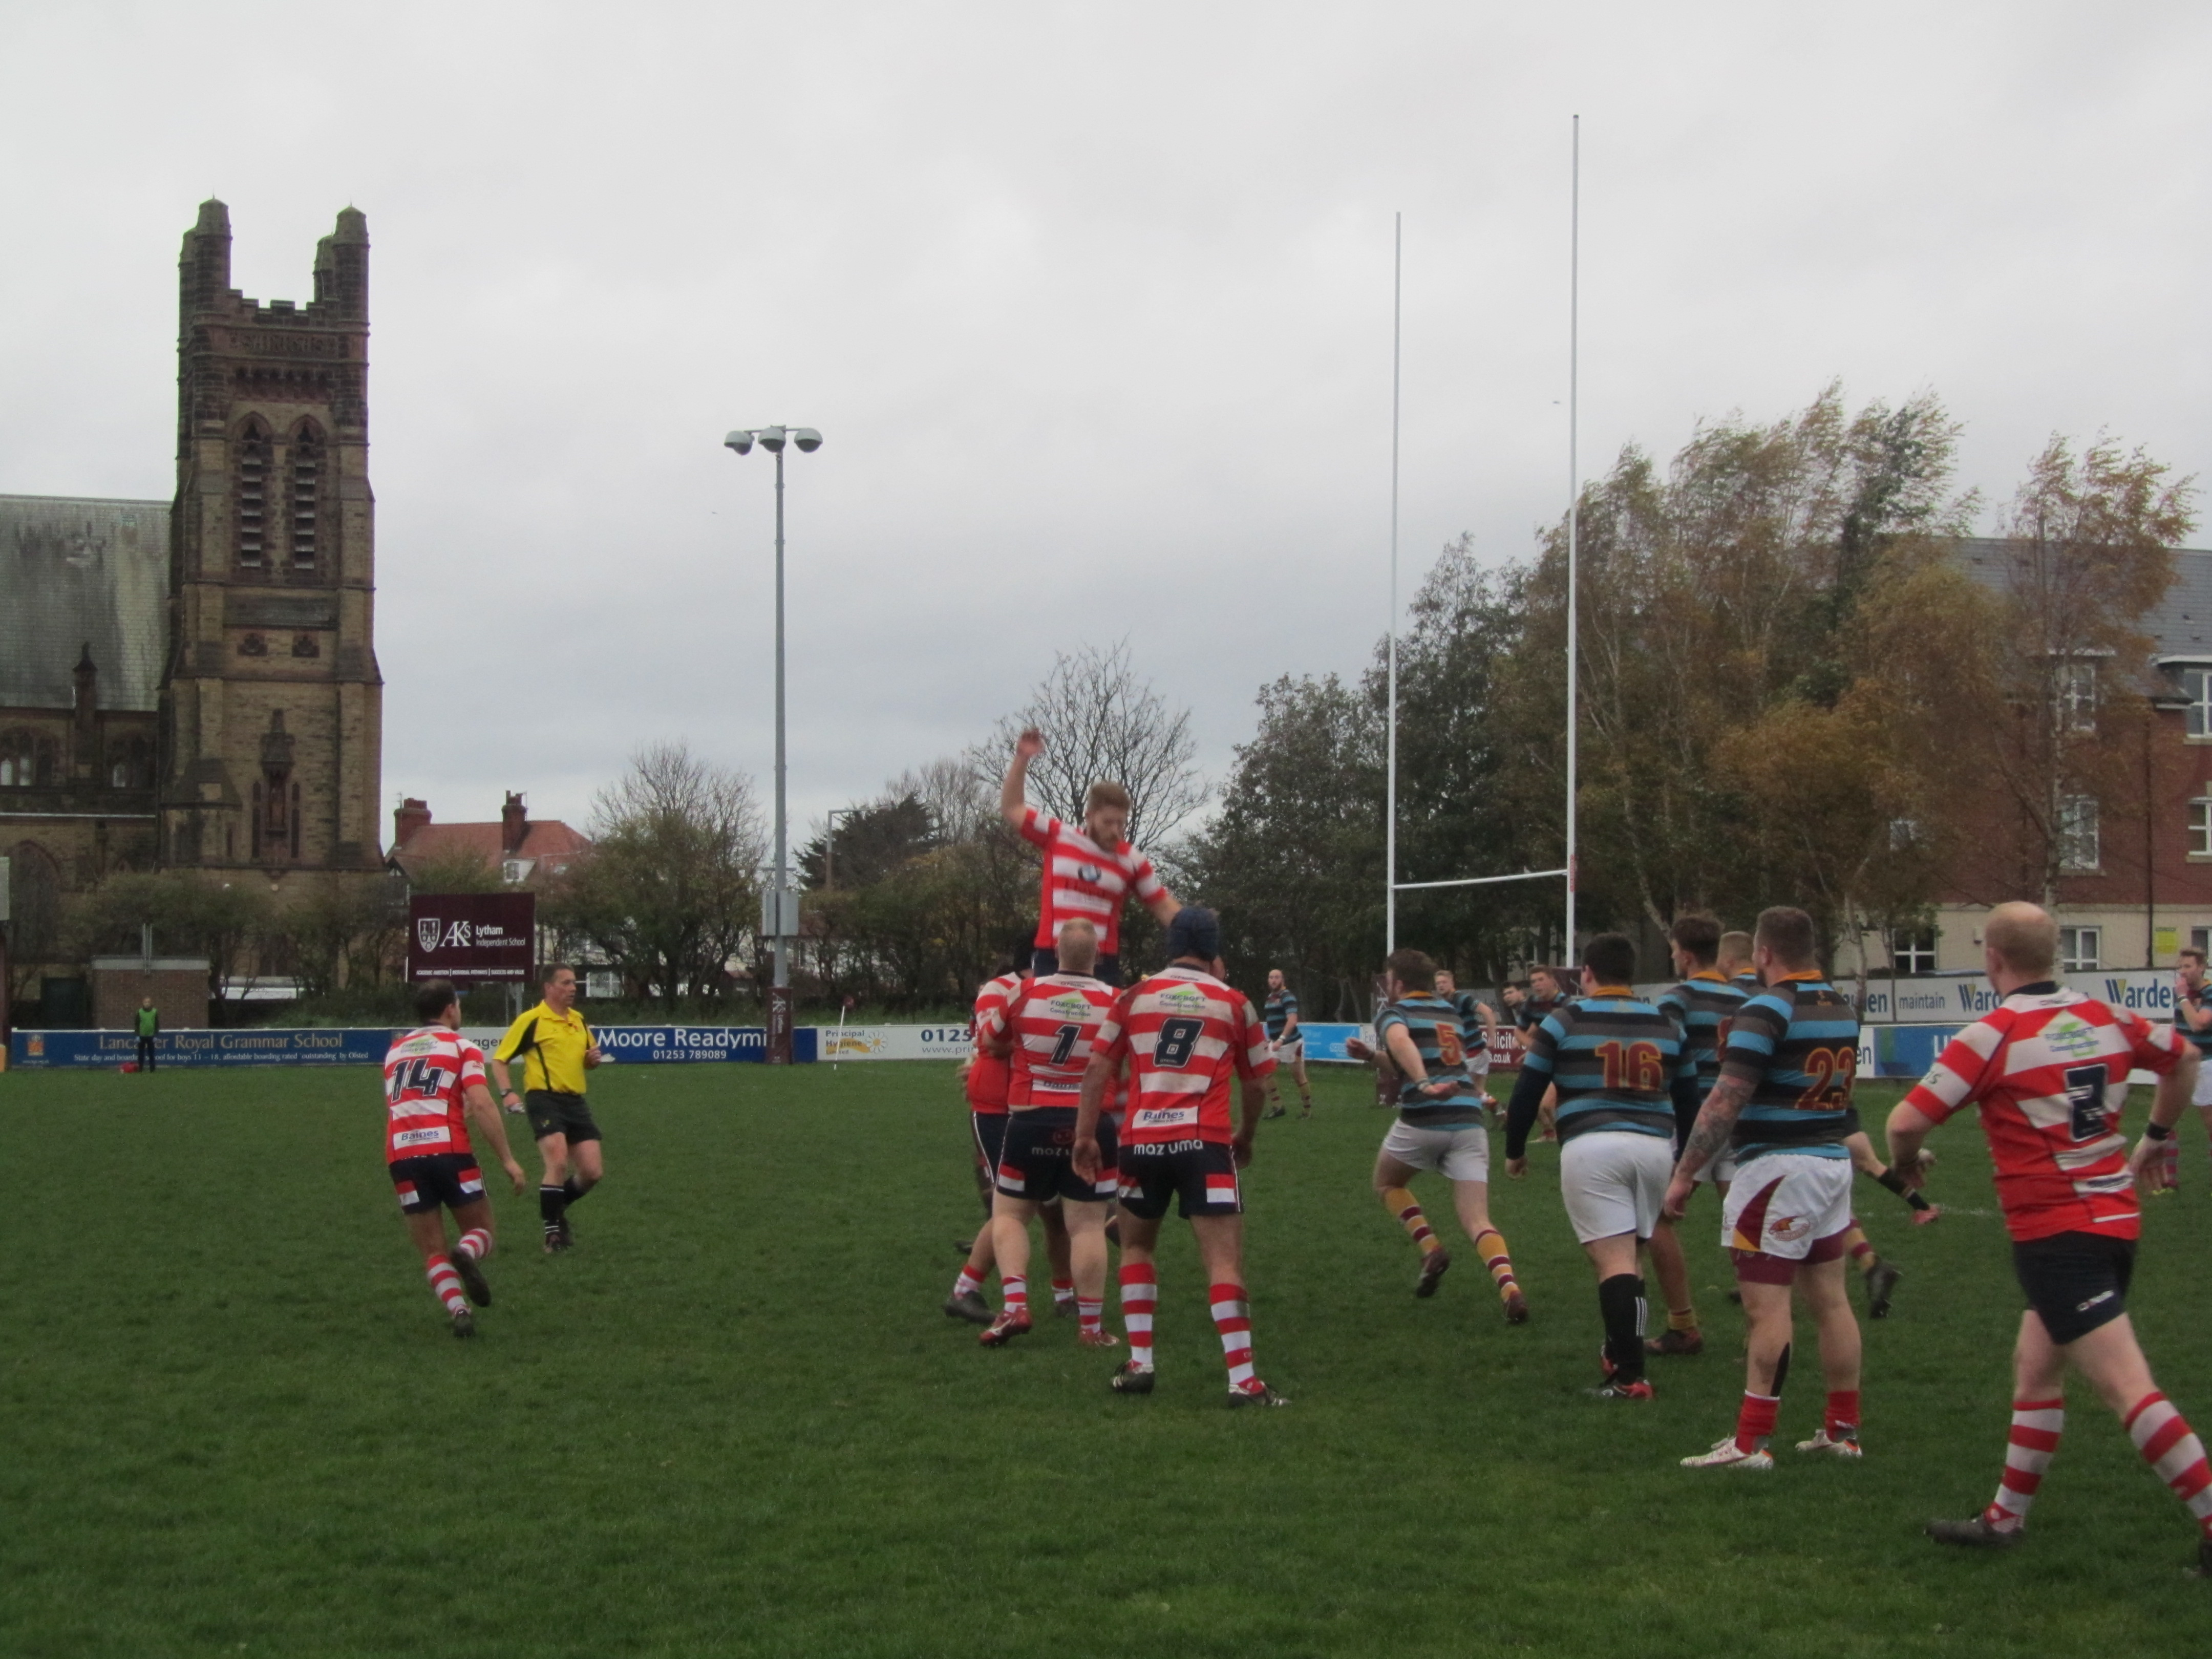 Fylde 2nd XV 55 pts v 10 pts Vale of Lune 2nd XV Incorrect data type for operator or @Function: Time/Date expected